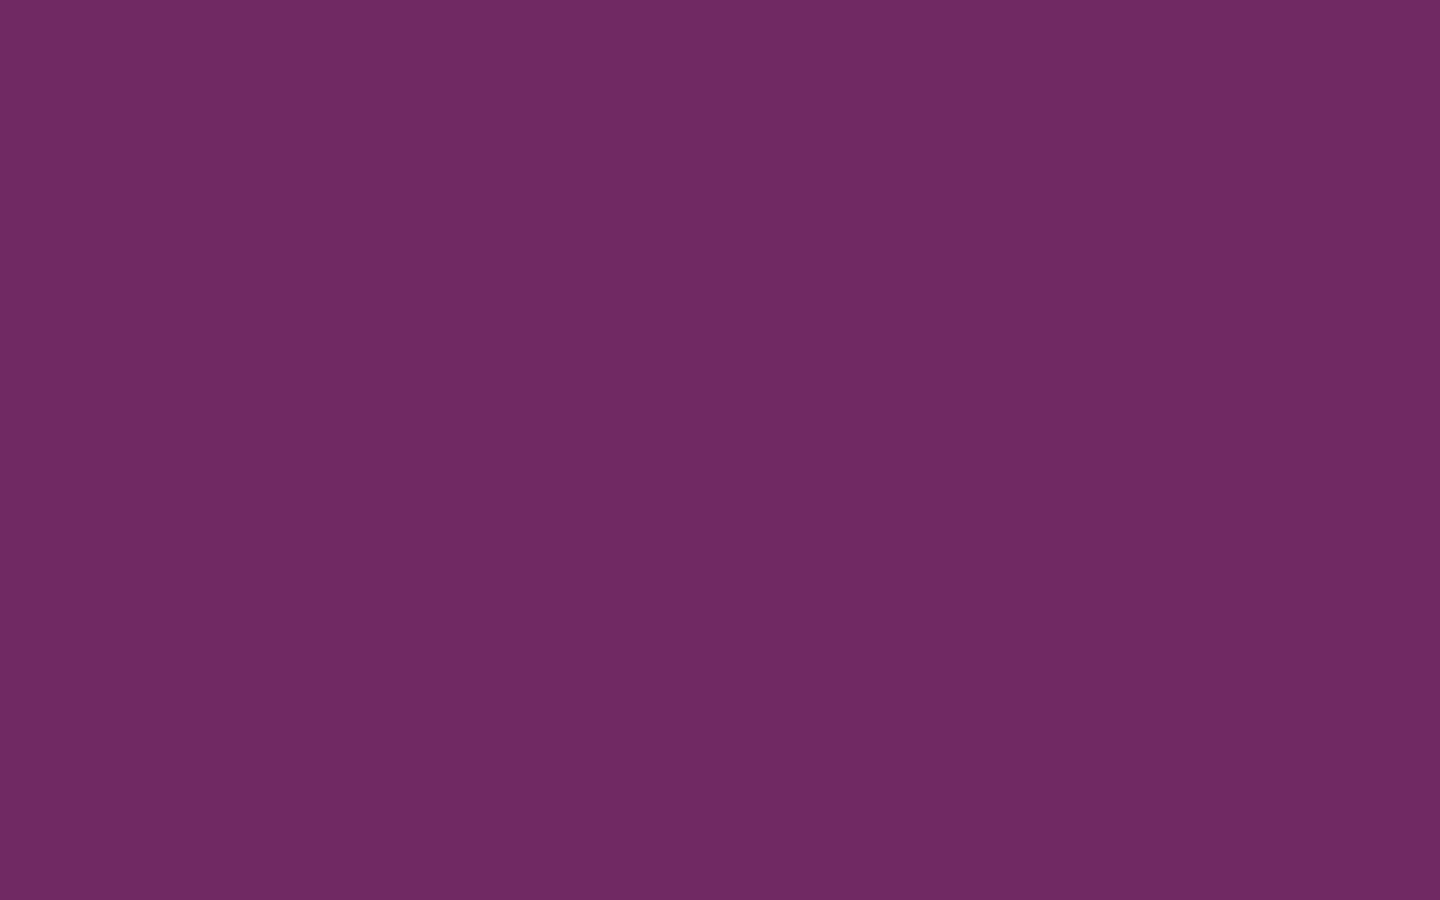 1440x900 Byzantium Solid Color Background